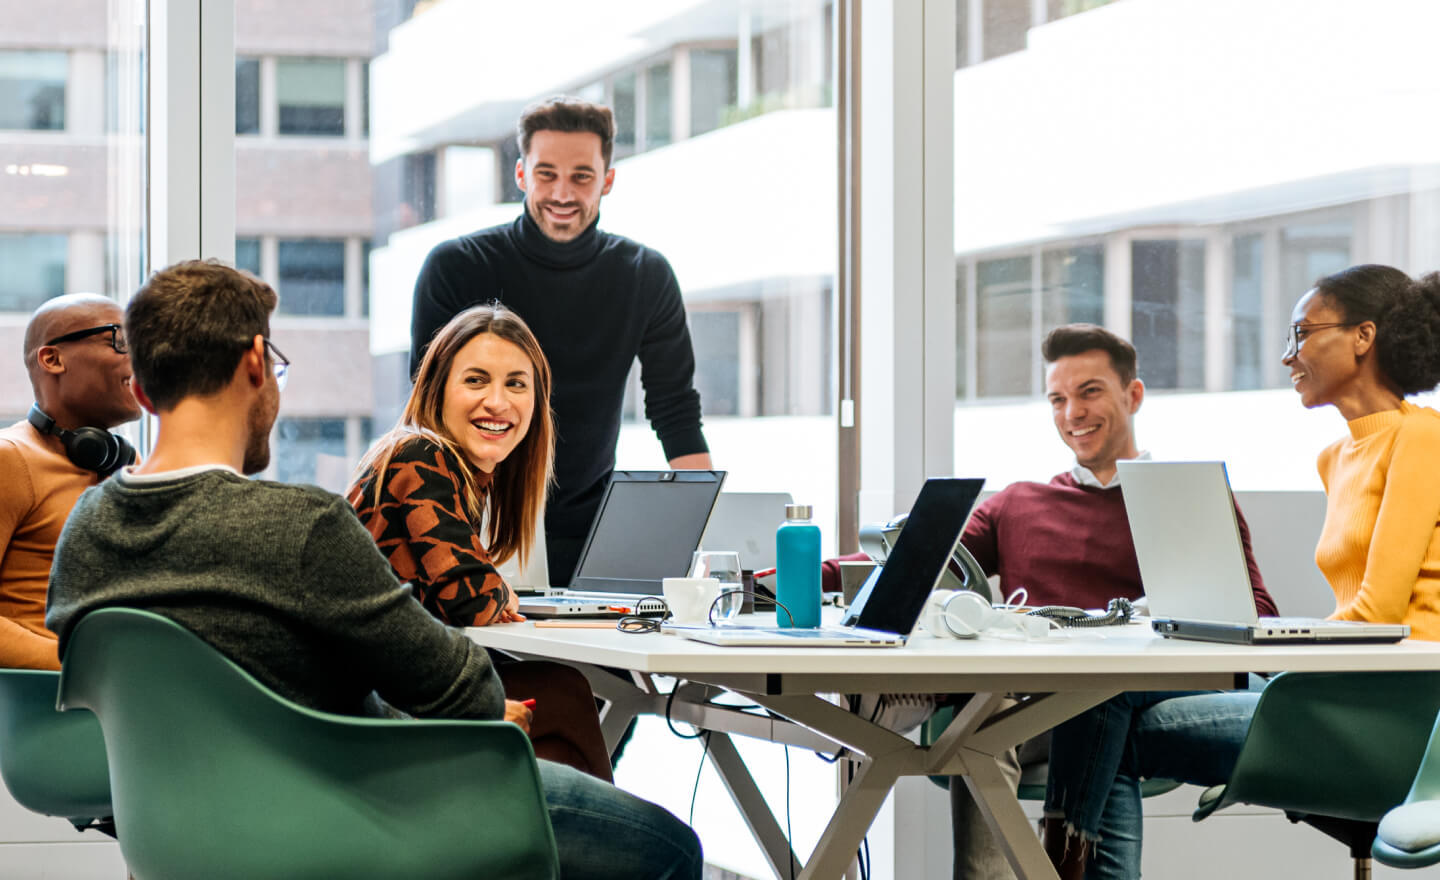 Group of coworkers around a conference table in a corporate office